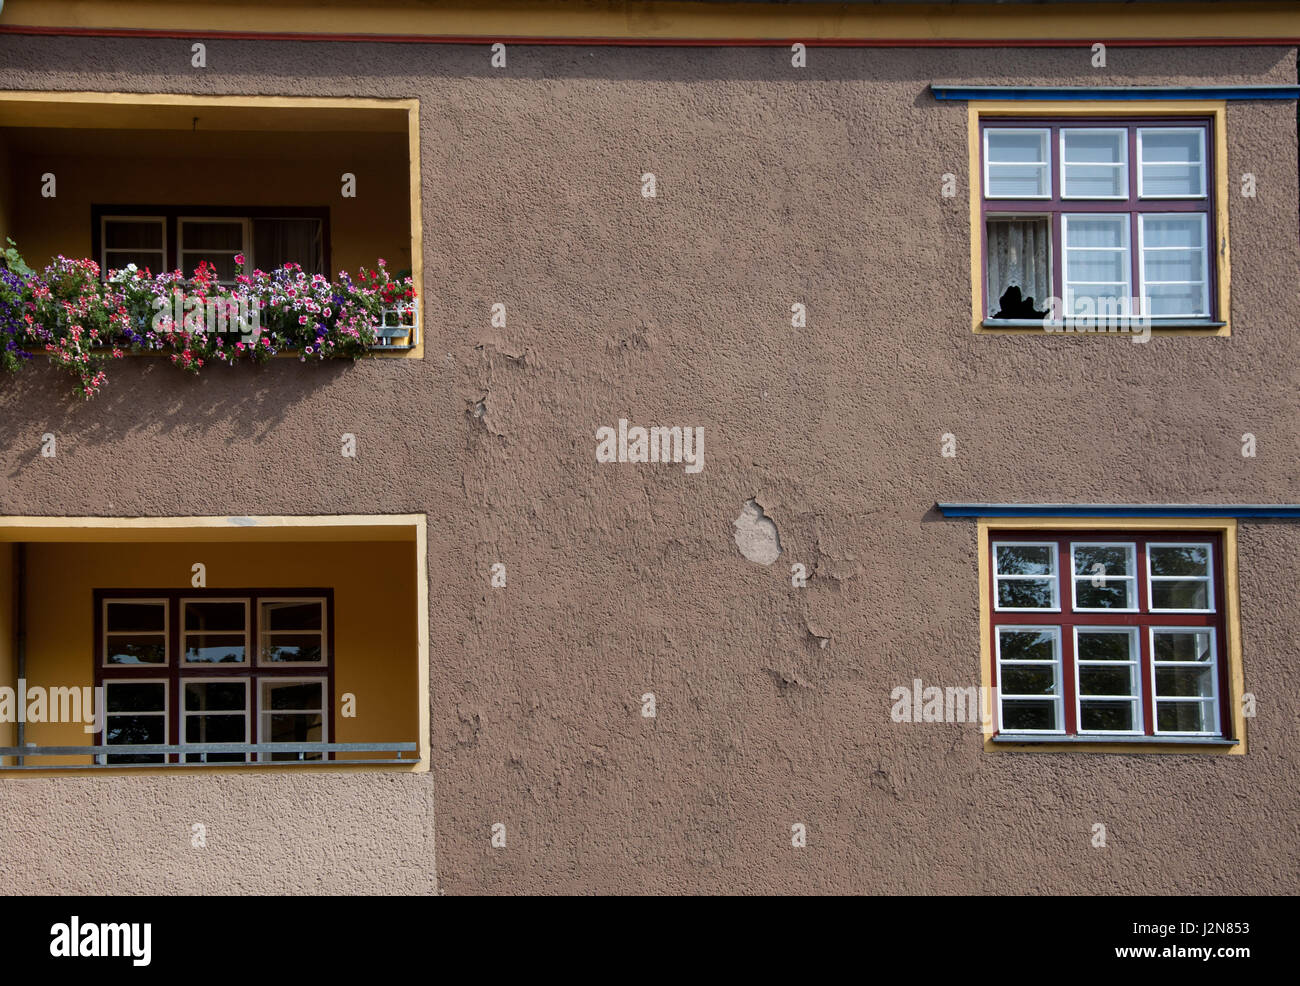 20er jahre stock photos 20er jahre stock images alamy for Architektur 20er jahre